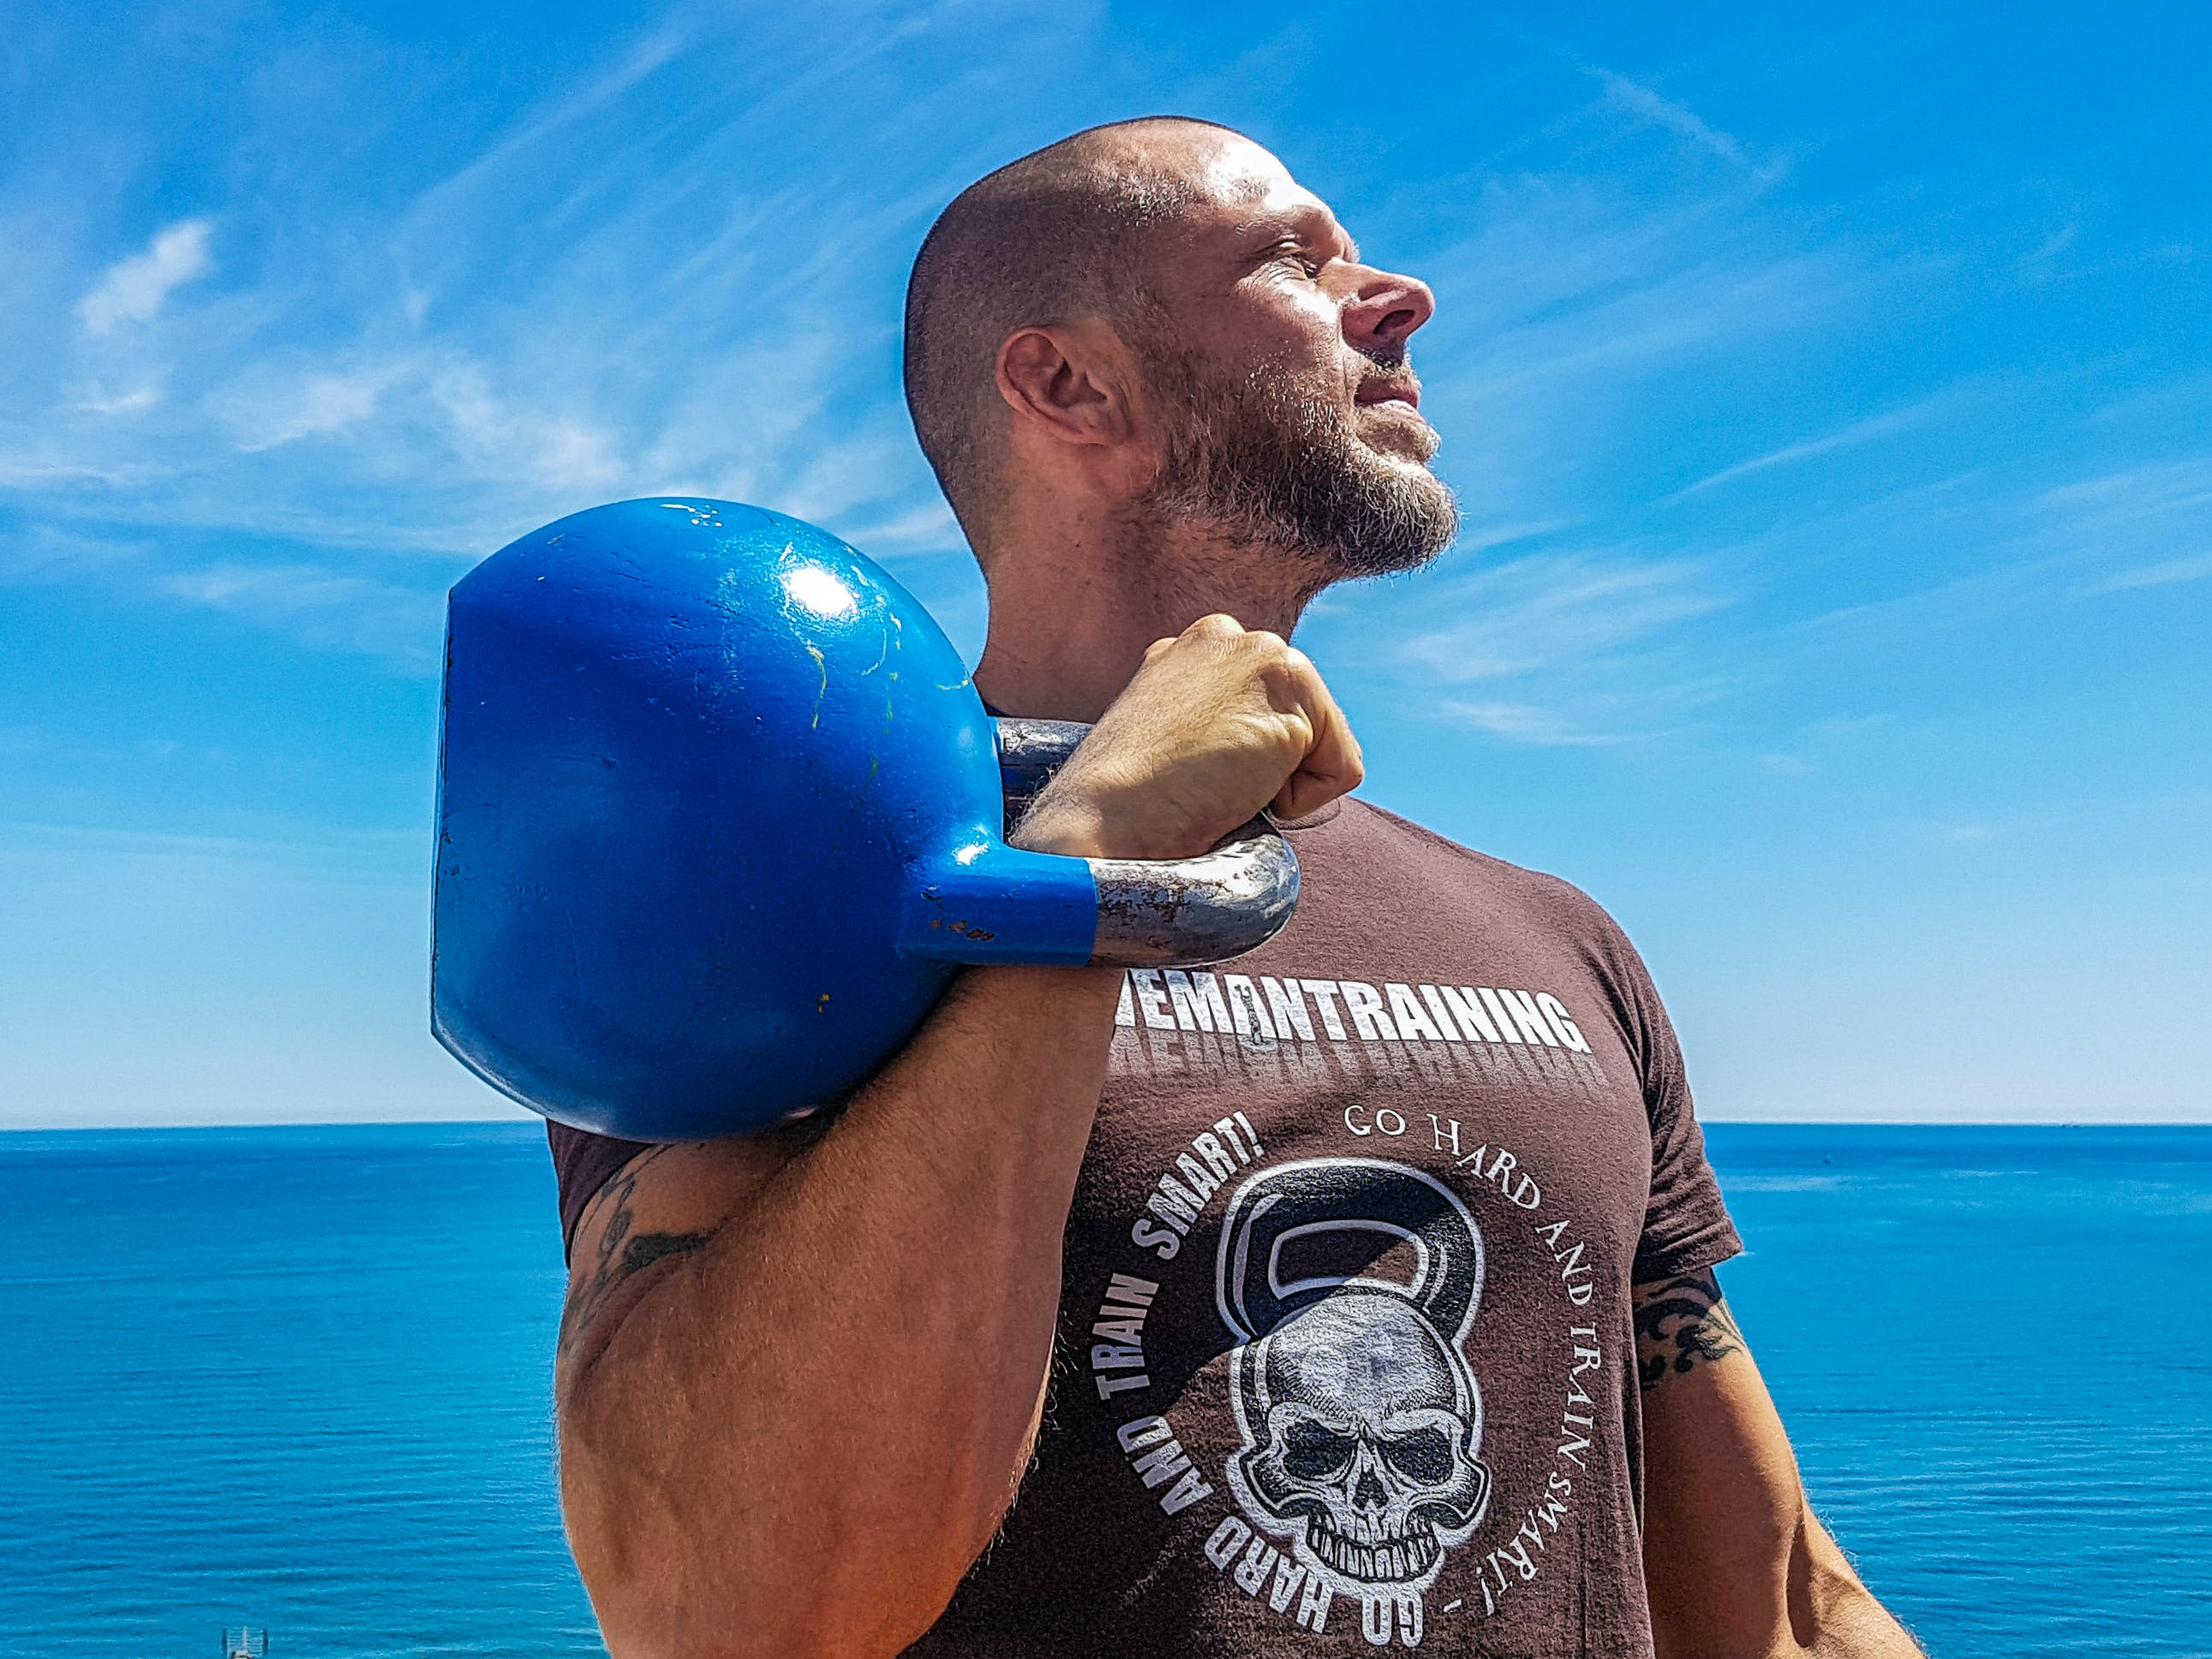 Man Carrying Kettlebell Near Body of Water